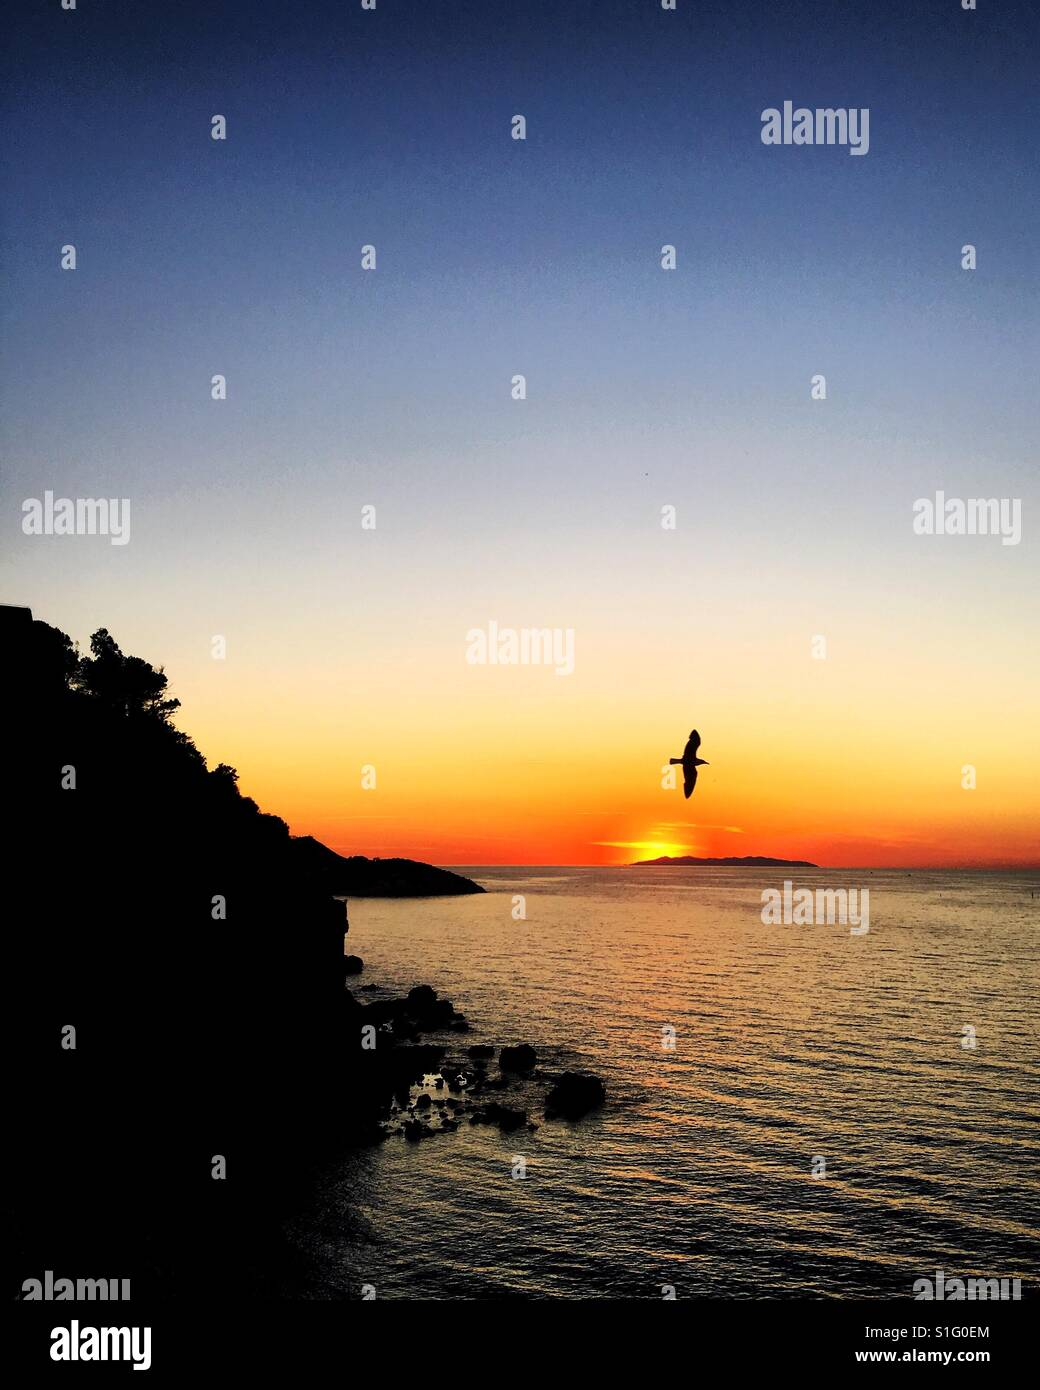 Seagull in the sunset with cliff silhouette on Isola d'Elba, Italy. - Stock Image